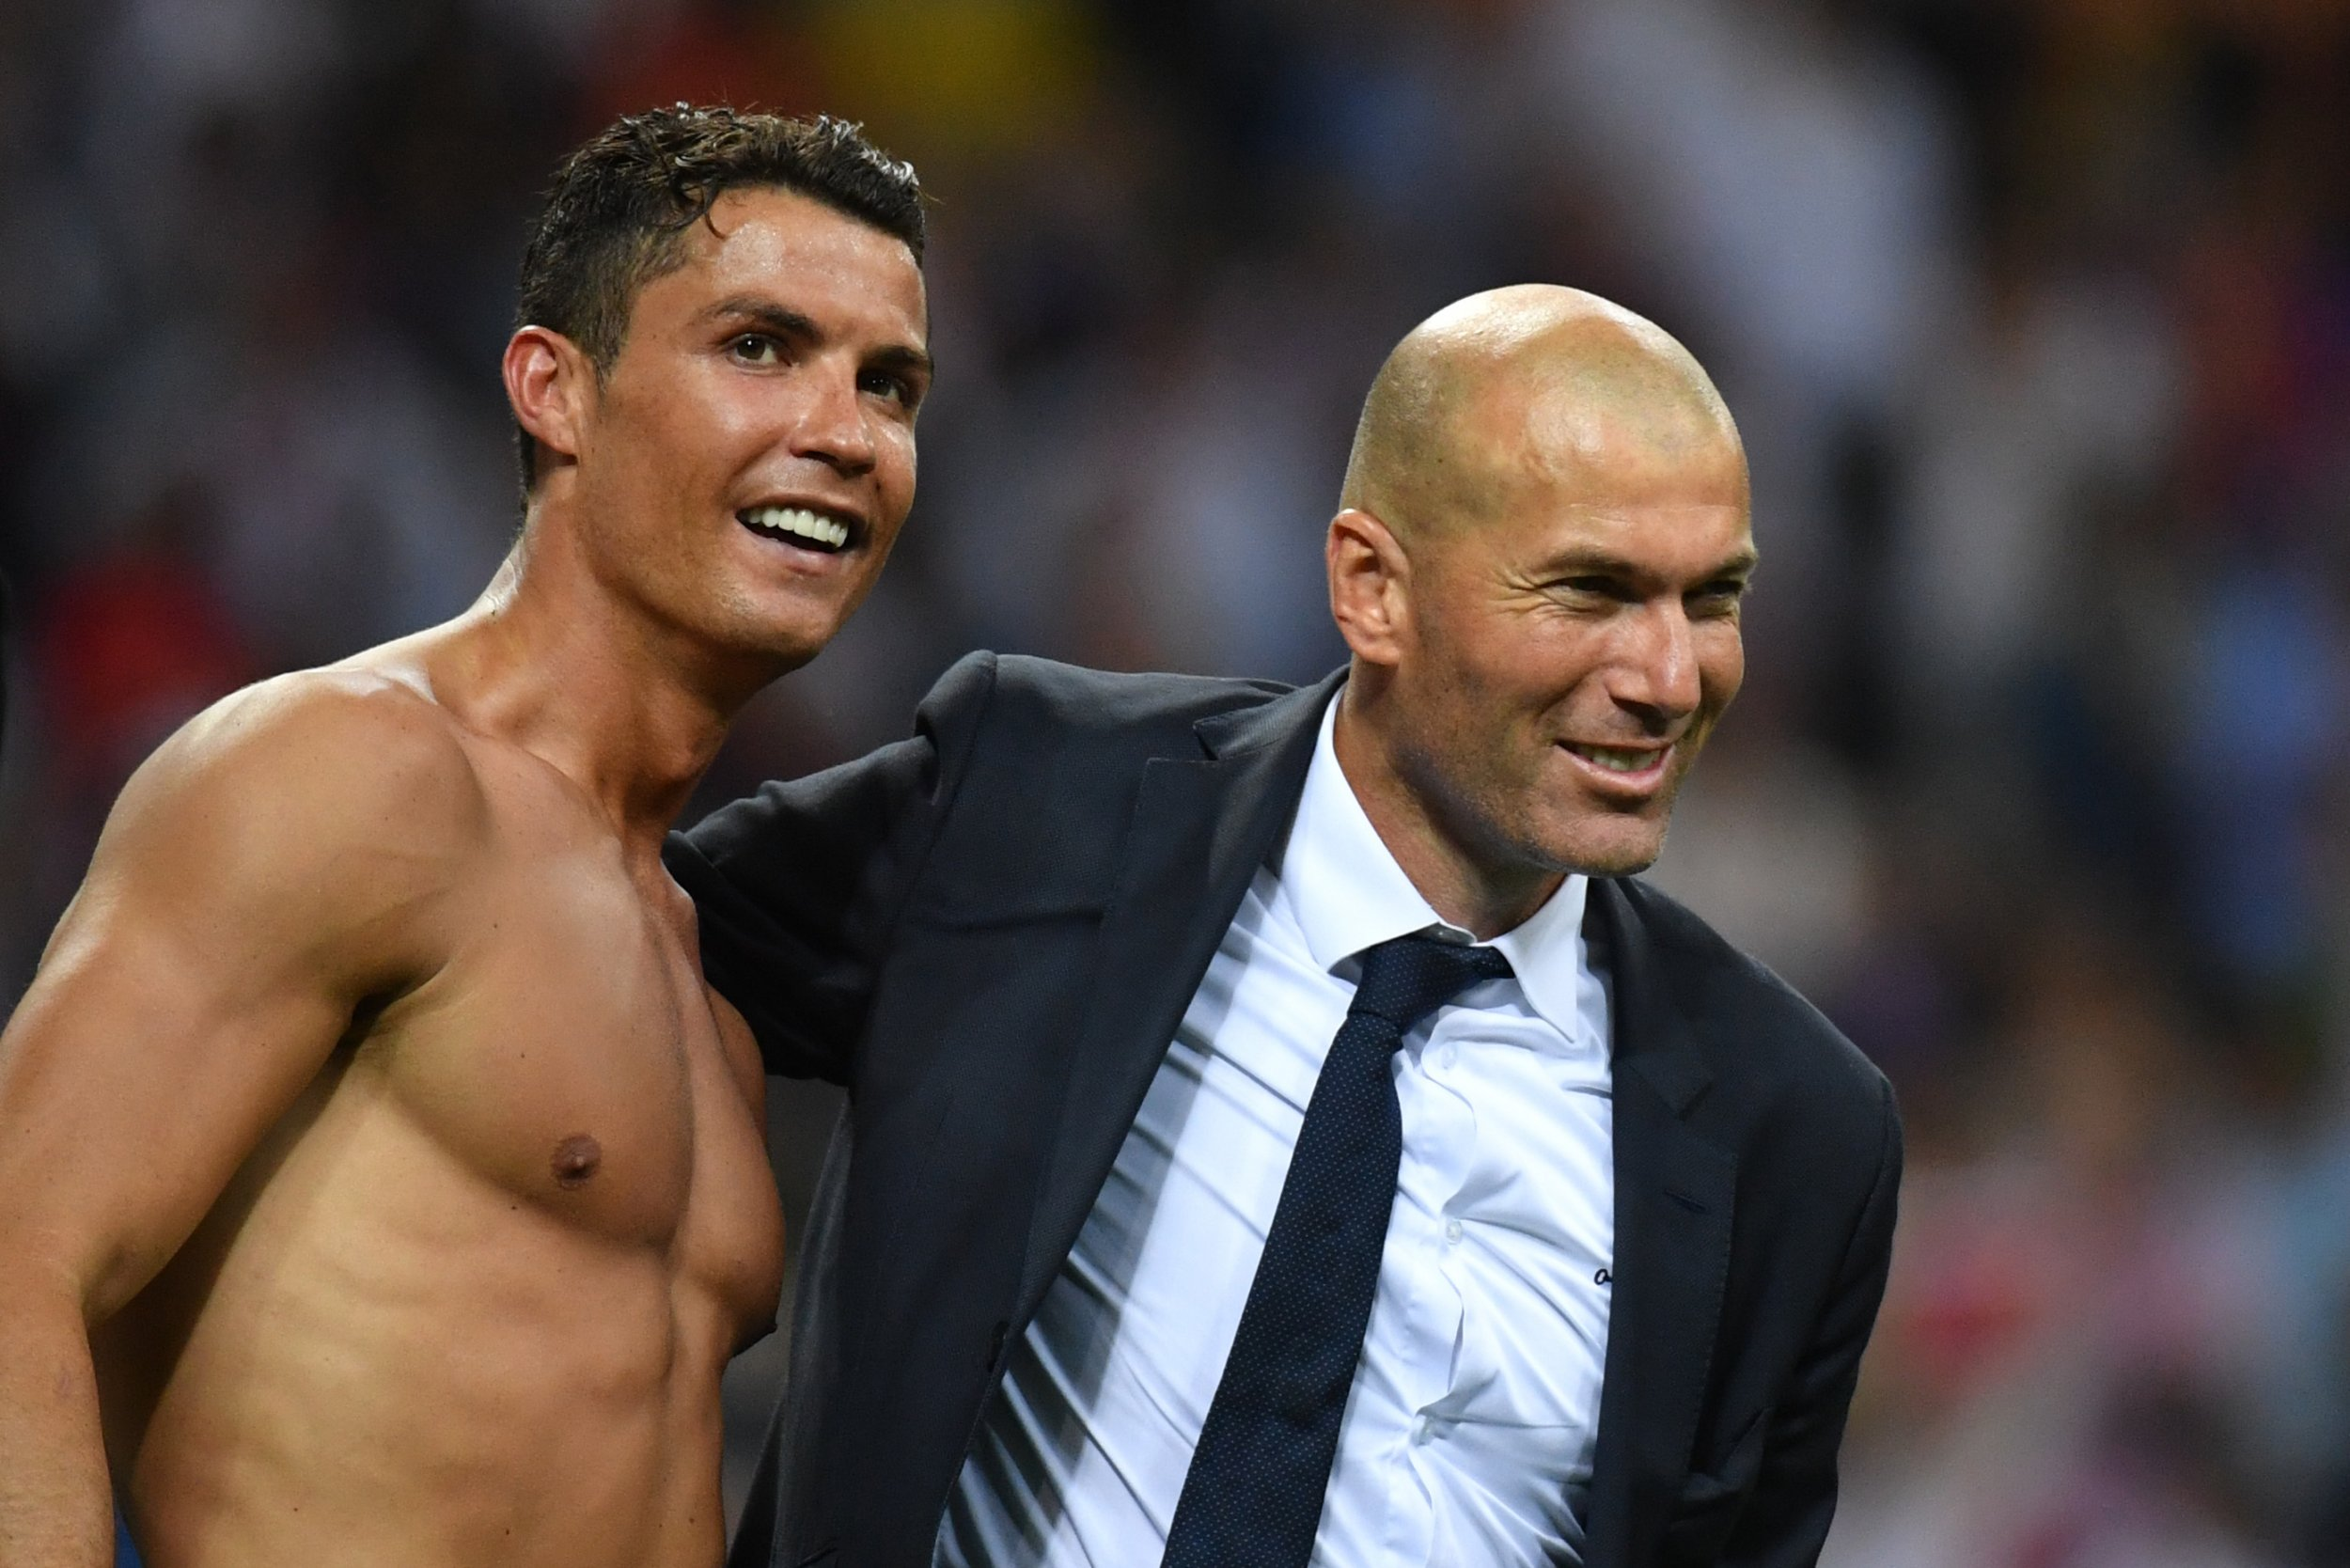 Cristiano Ronaldo Why Did Real Madrid Star Throw a Tantrum at